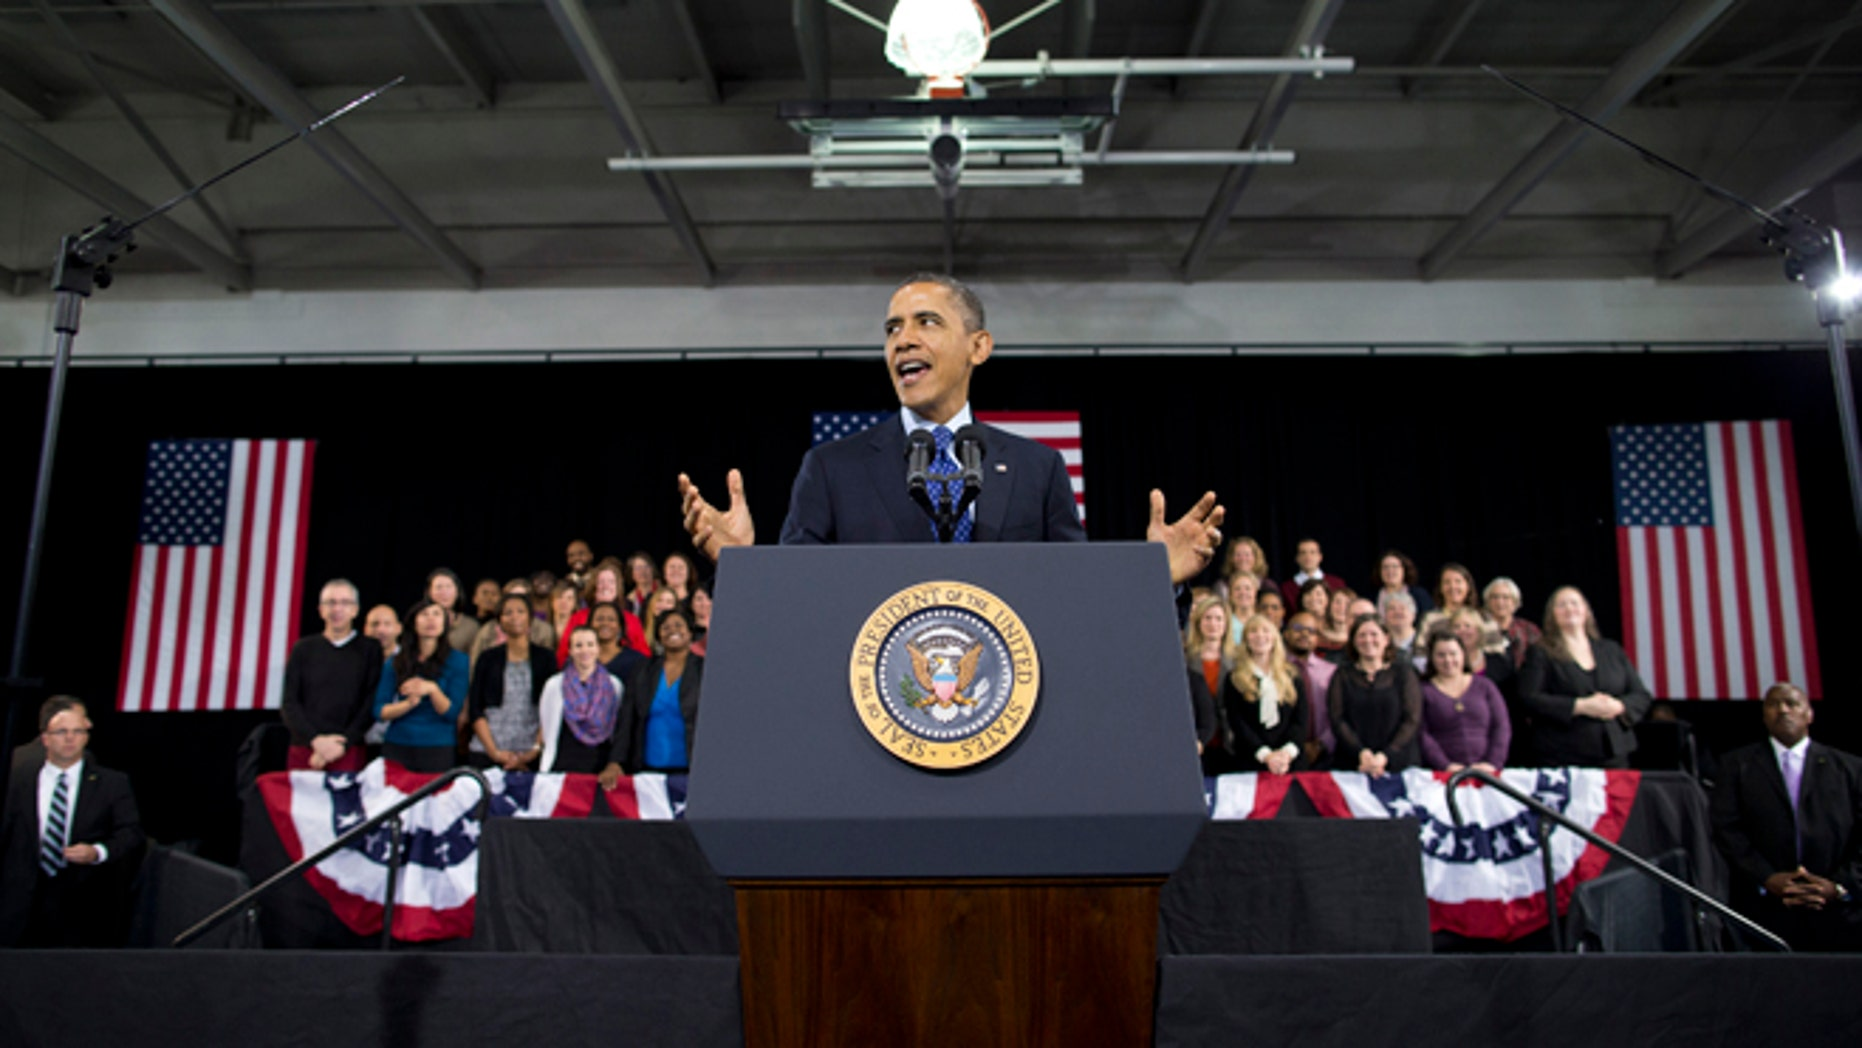 President Barack Obama gestures as he speaks about education, Thursday, Feb. 14, 2013, at the Decatur Community Recreation Center in Decatur, Ga.  The president is traveling to promote his economic and educational plan that he highlighted in his State of the Union address. (AP Photo/ Evan Vucci)